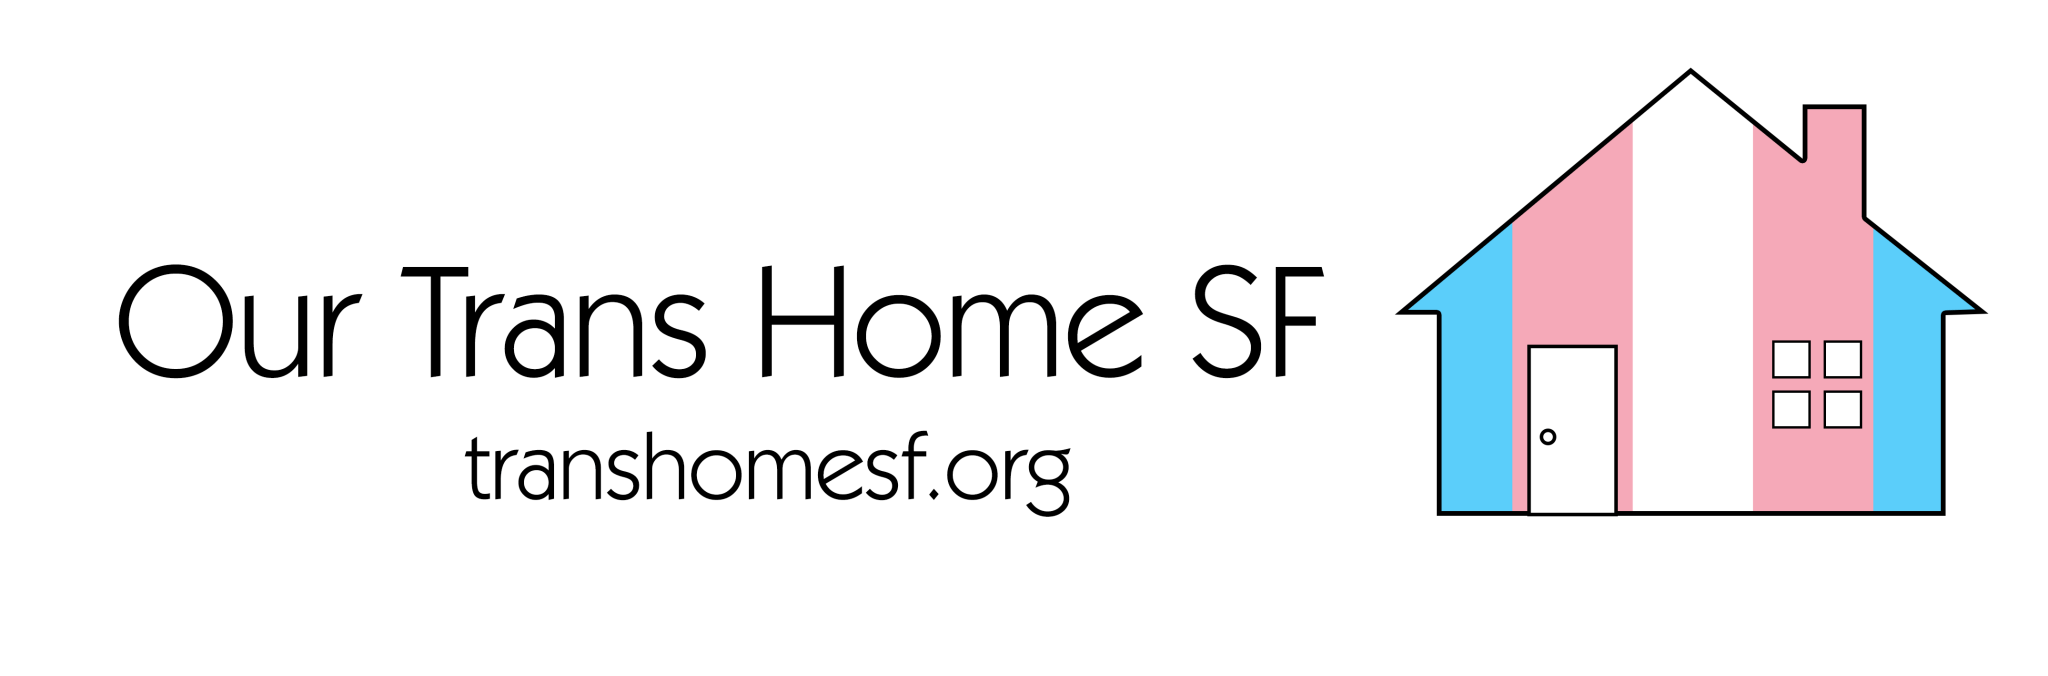 Our_trans_home_sf_banner